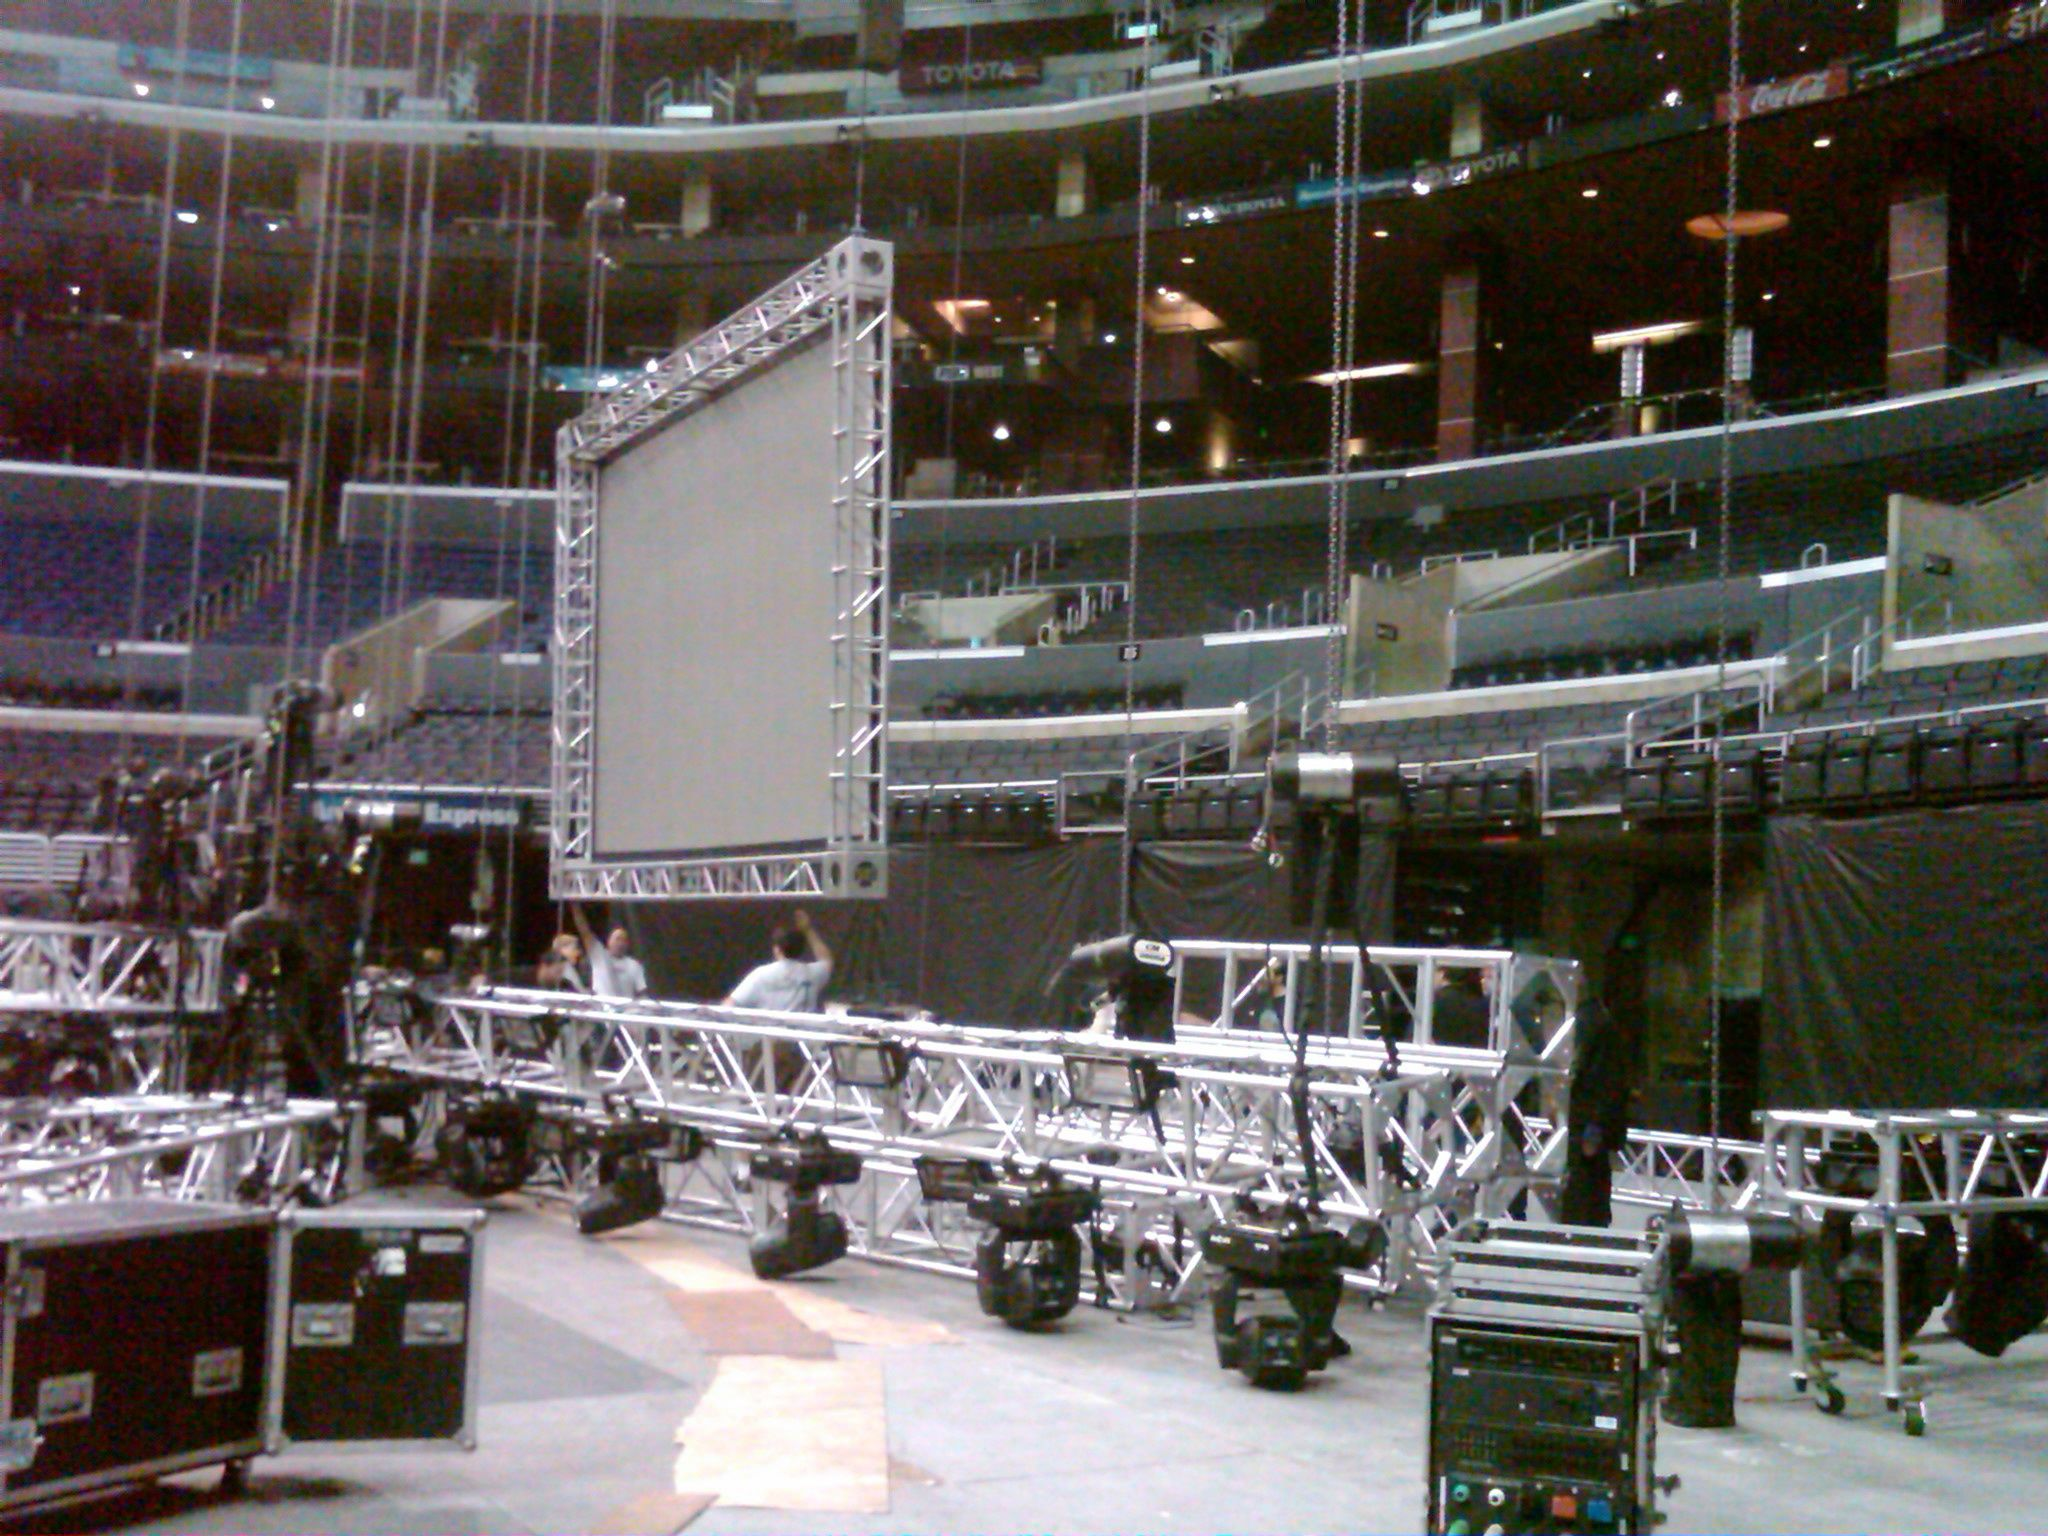 Another view of part of the truss rig and the center screen